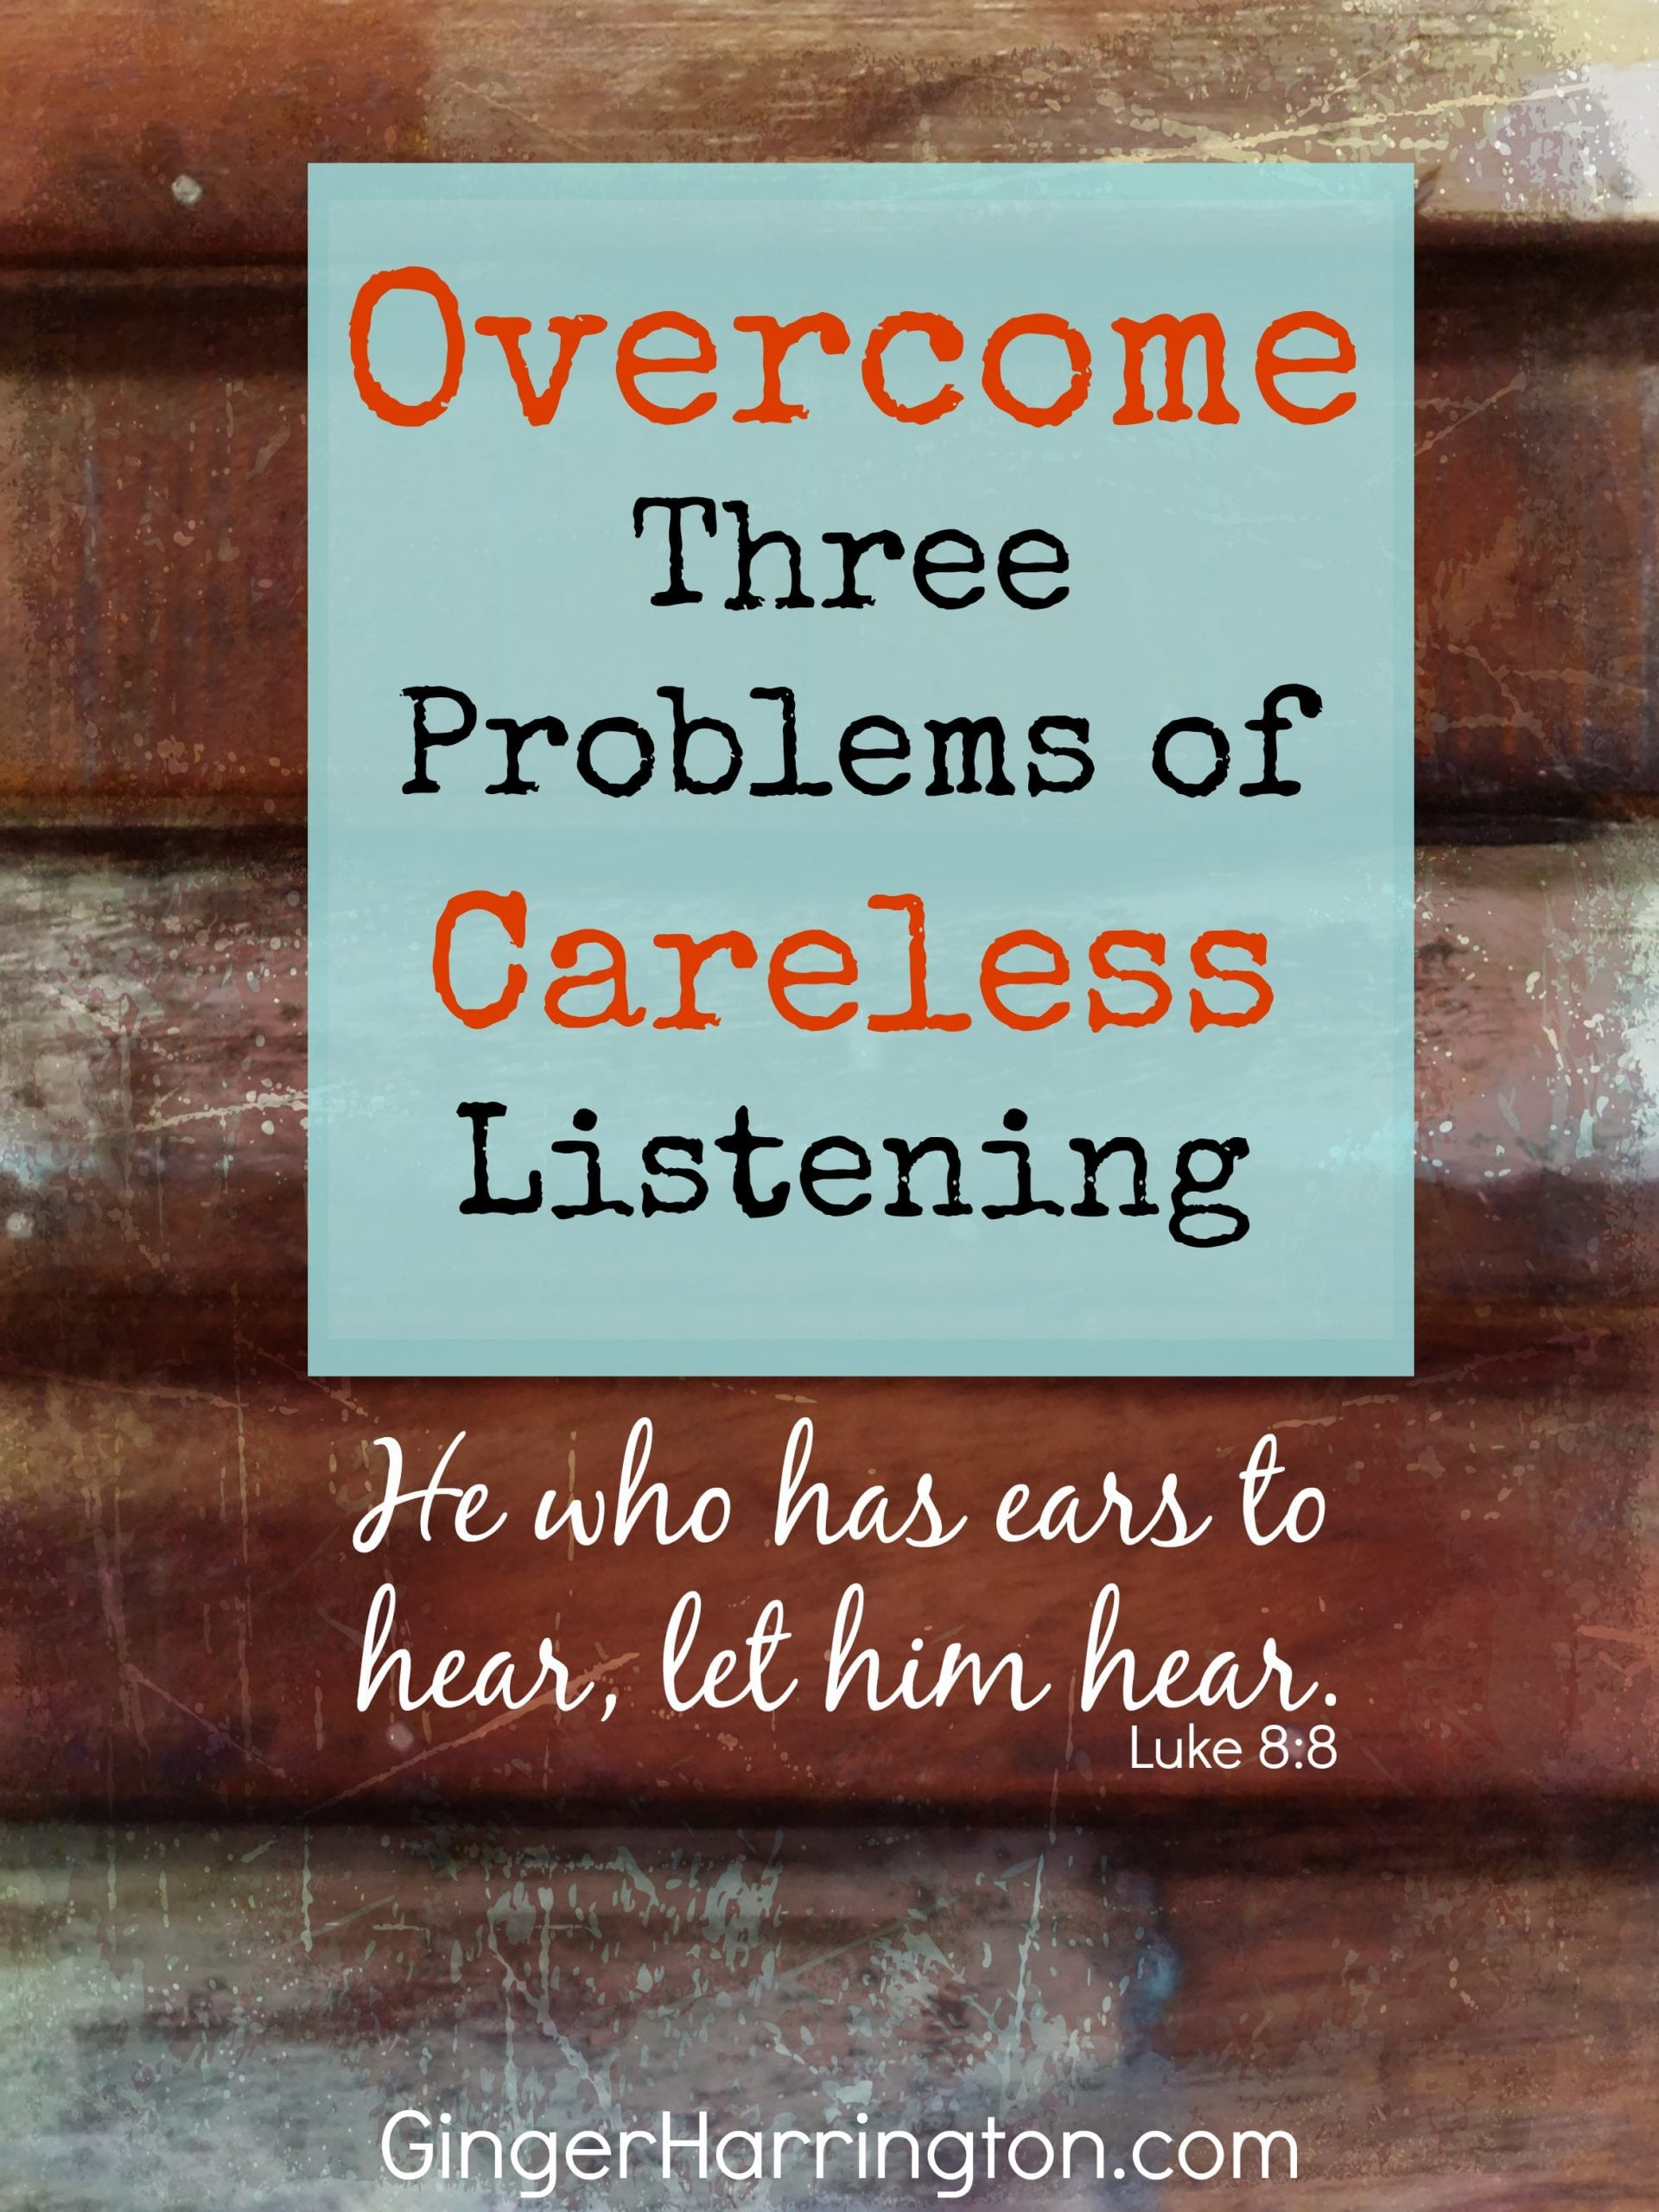 Overcome three problems of careless listening to get make the most of God's wisdom.